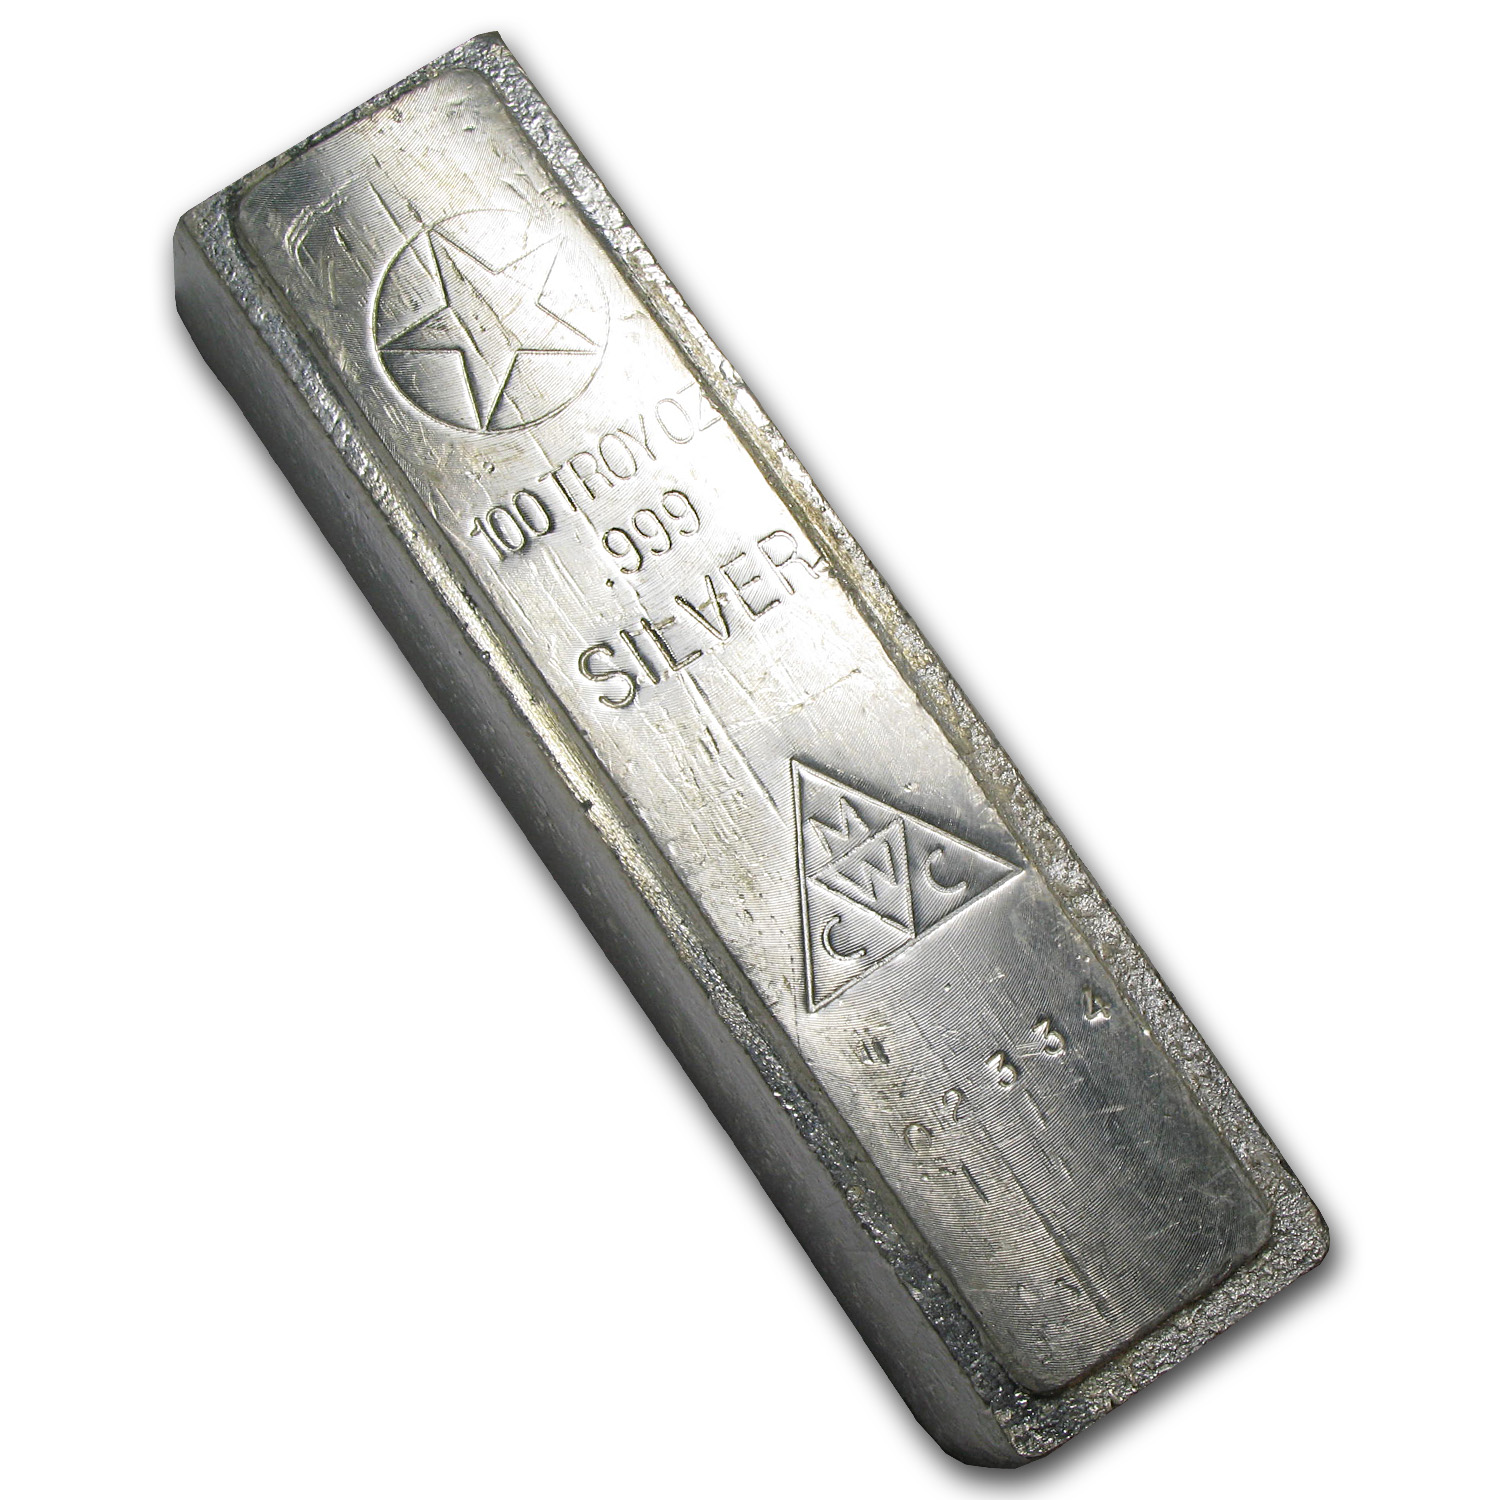 100 oz Silver Bar - American Republic Silver Co.